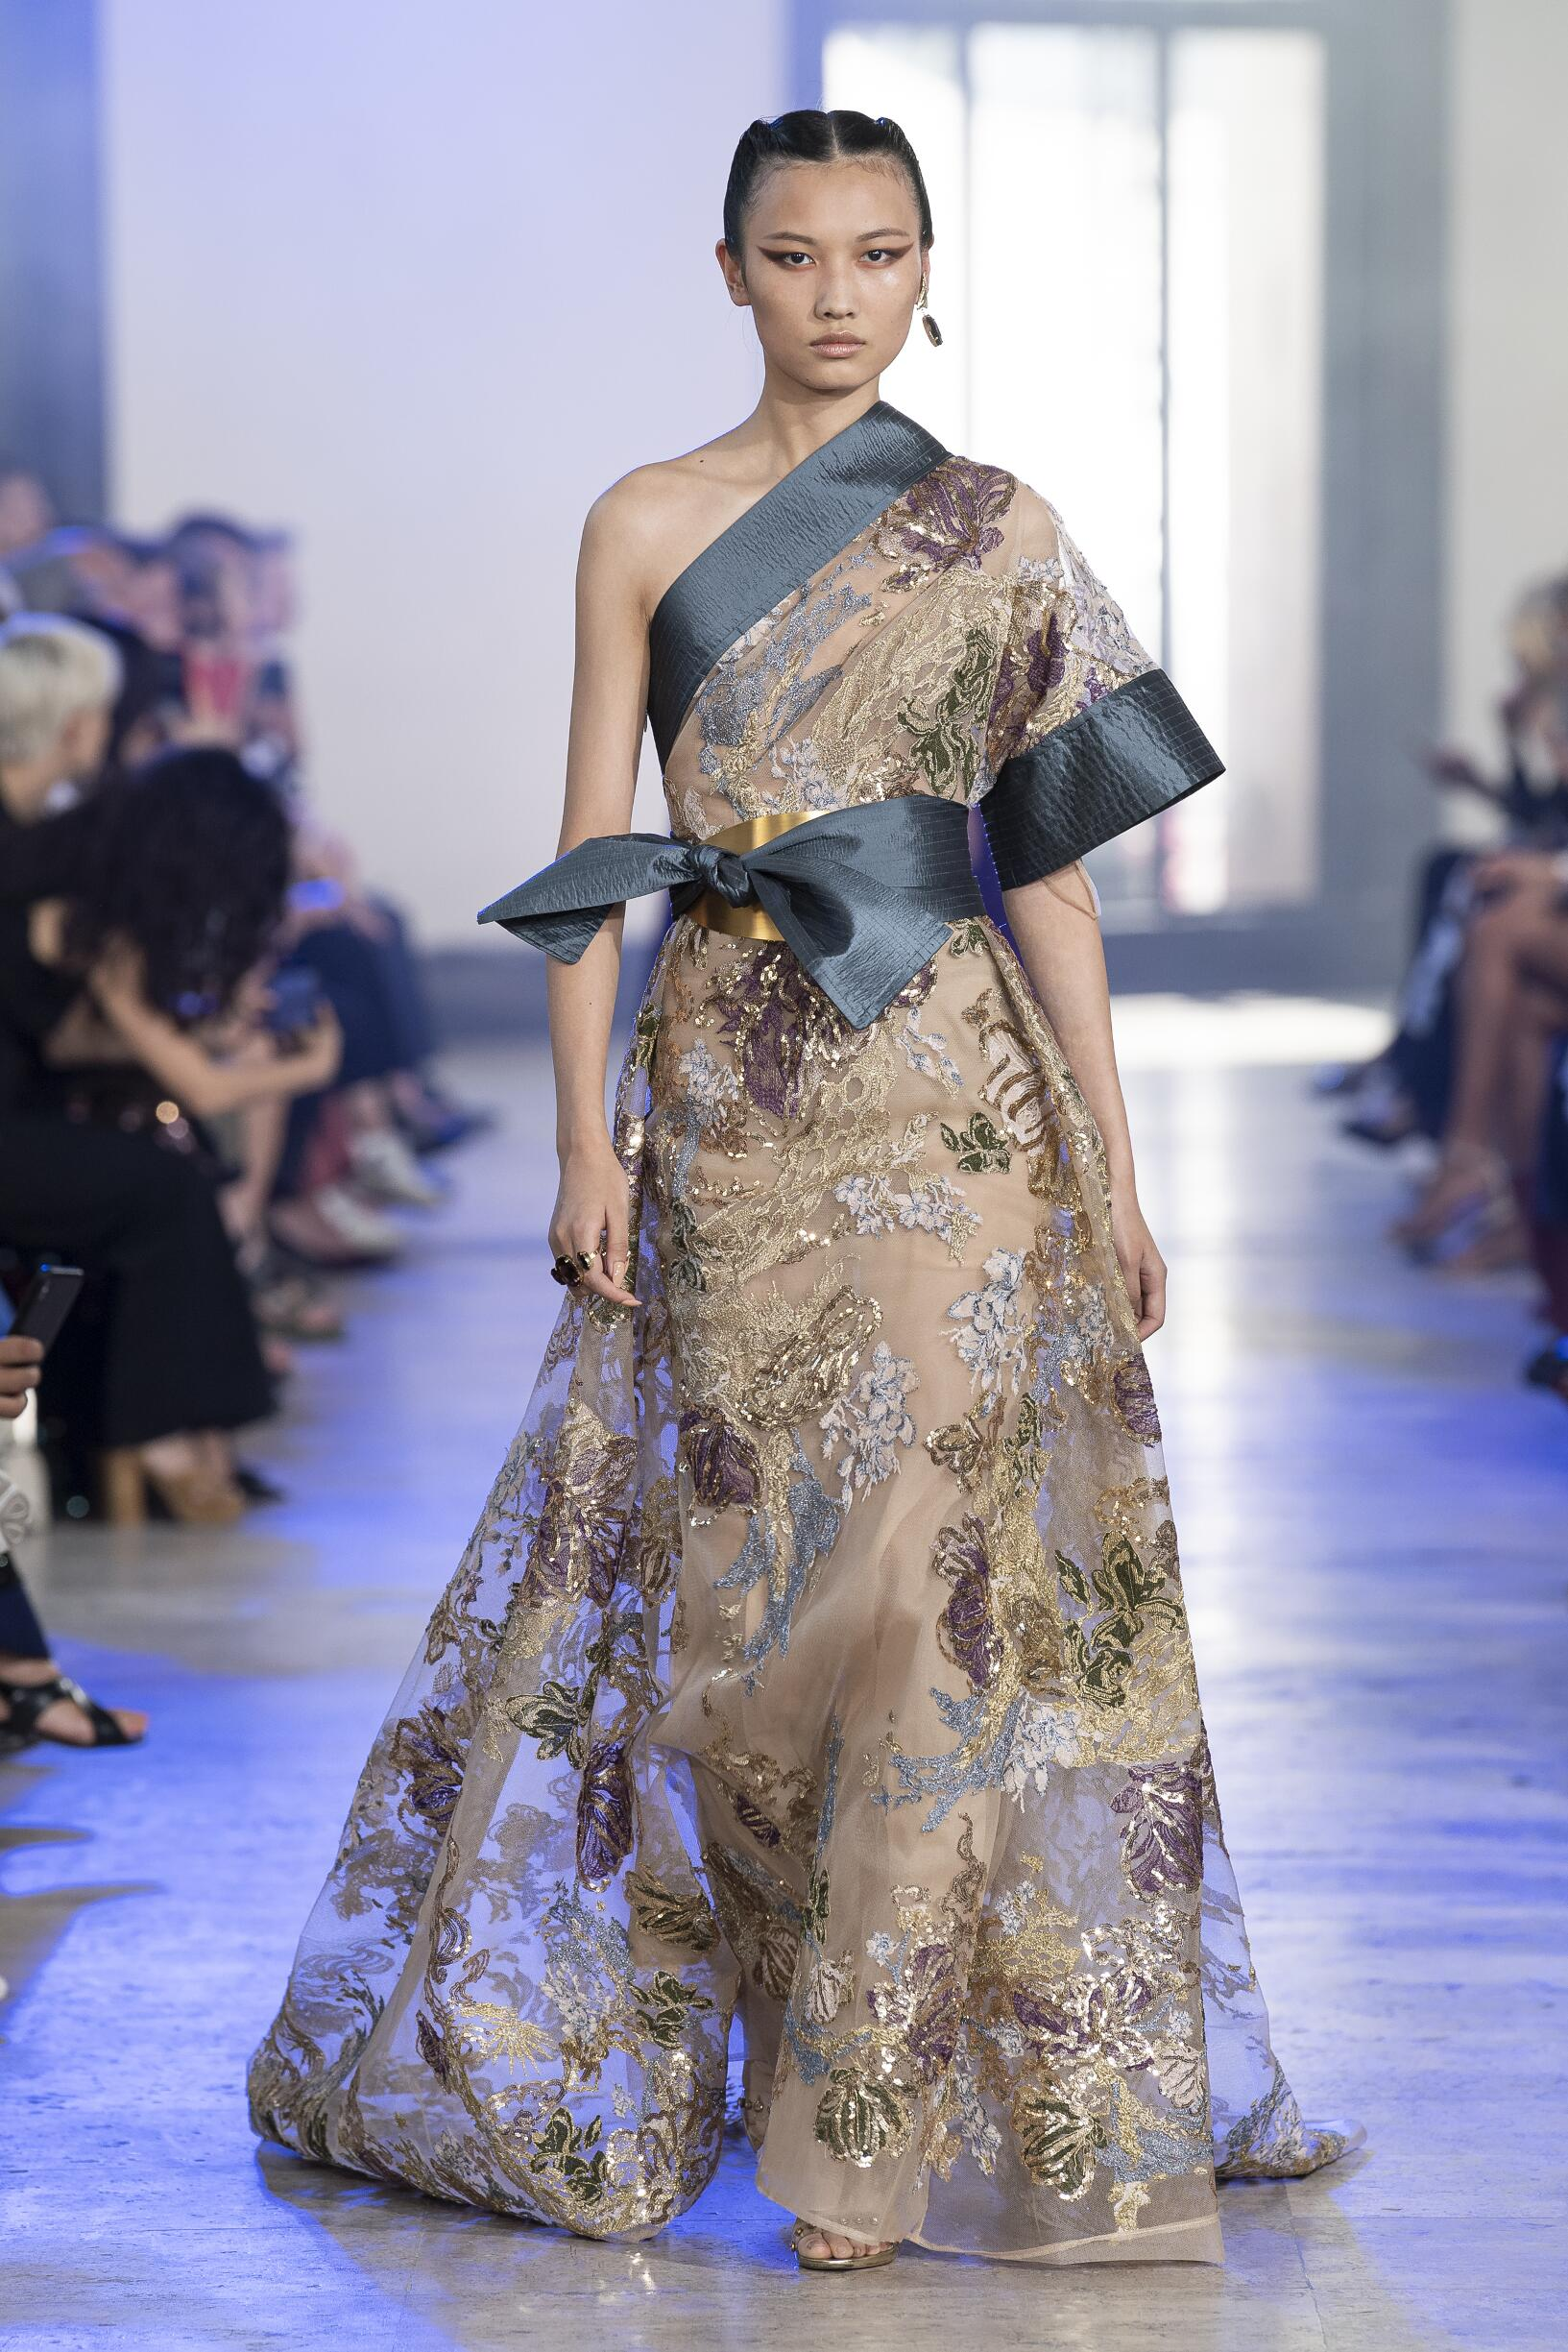 2019-20 Elie Saab Haute Couture Fall Winter Woman